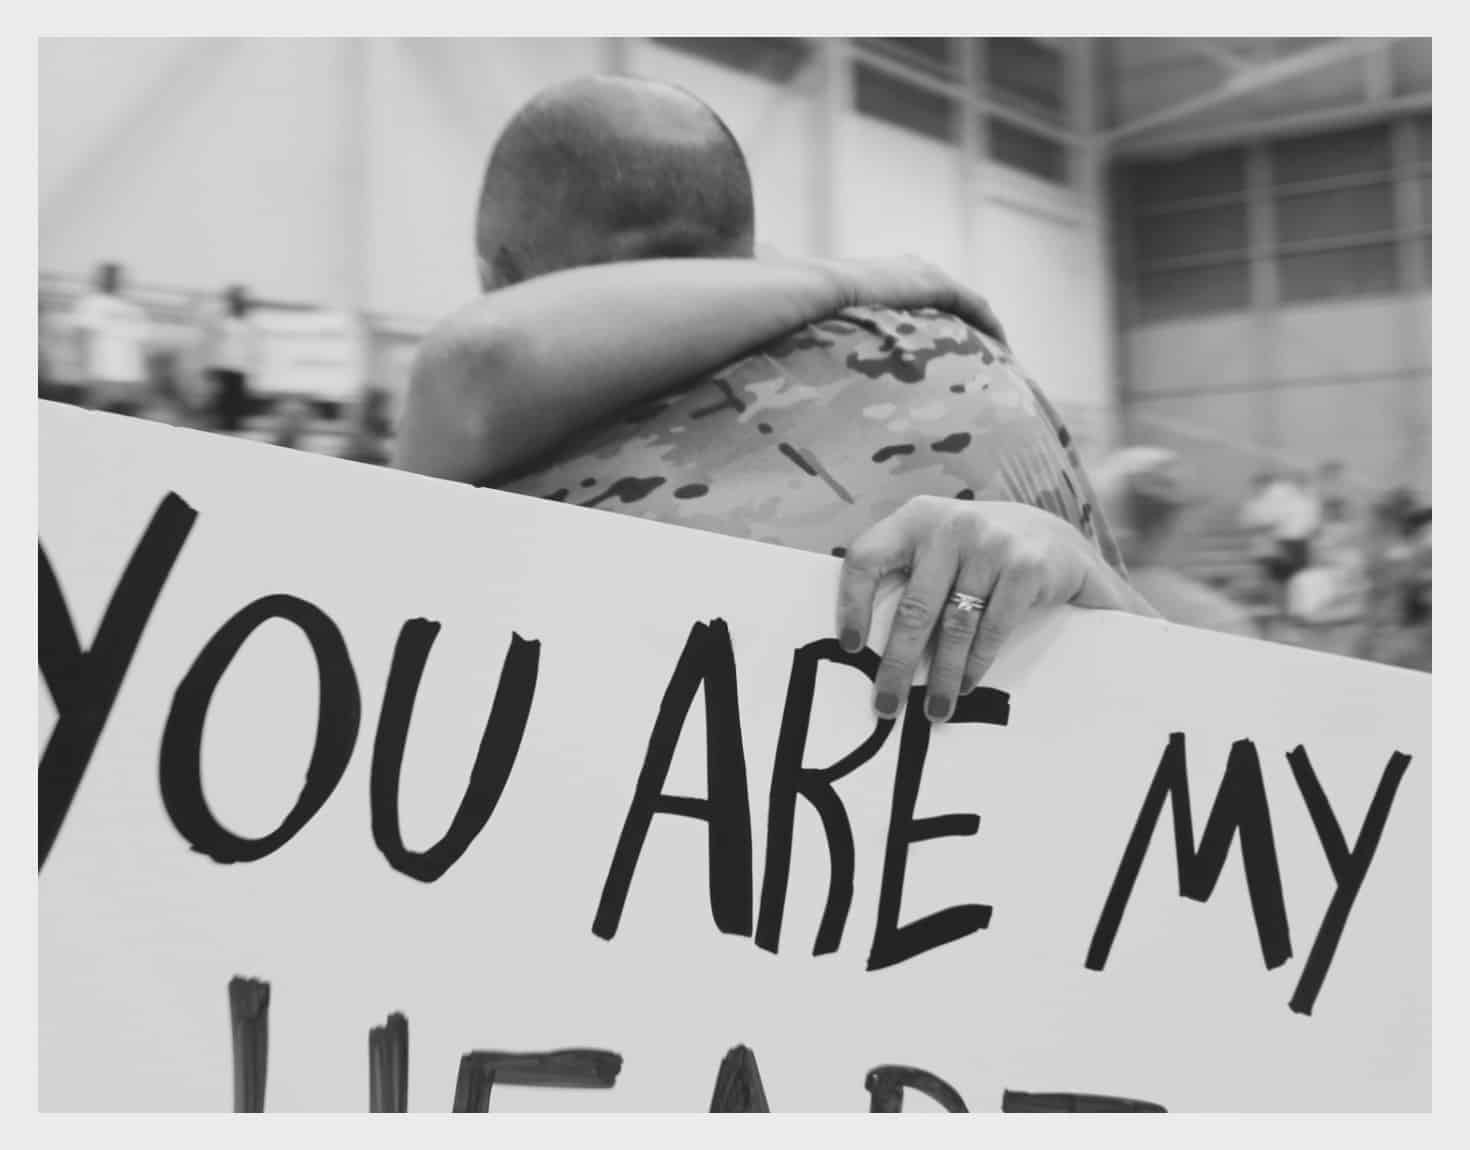 To The Military Spouse